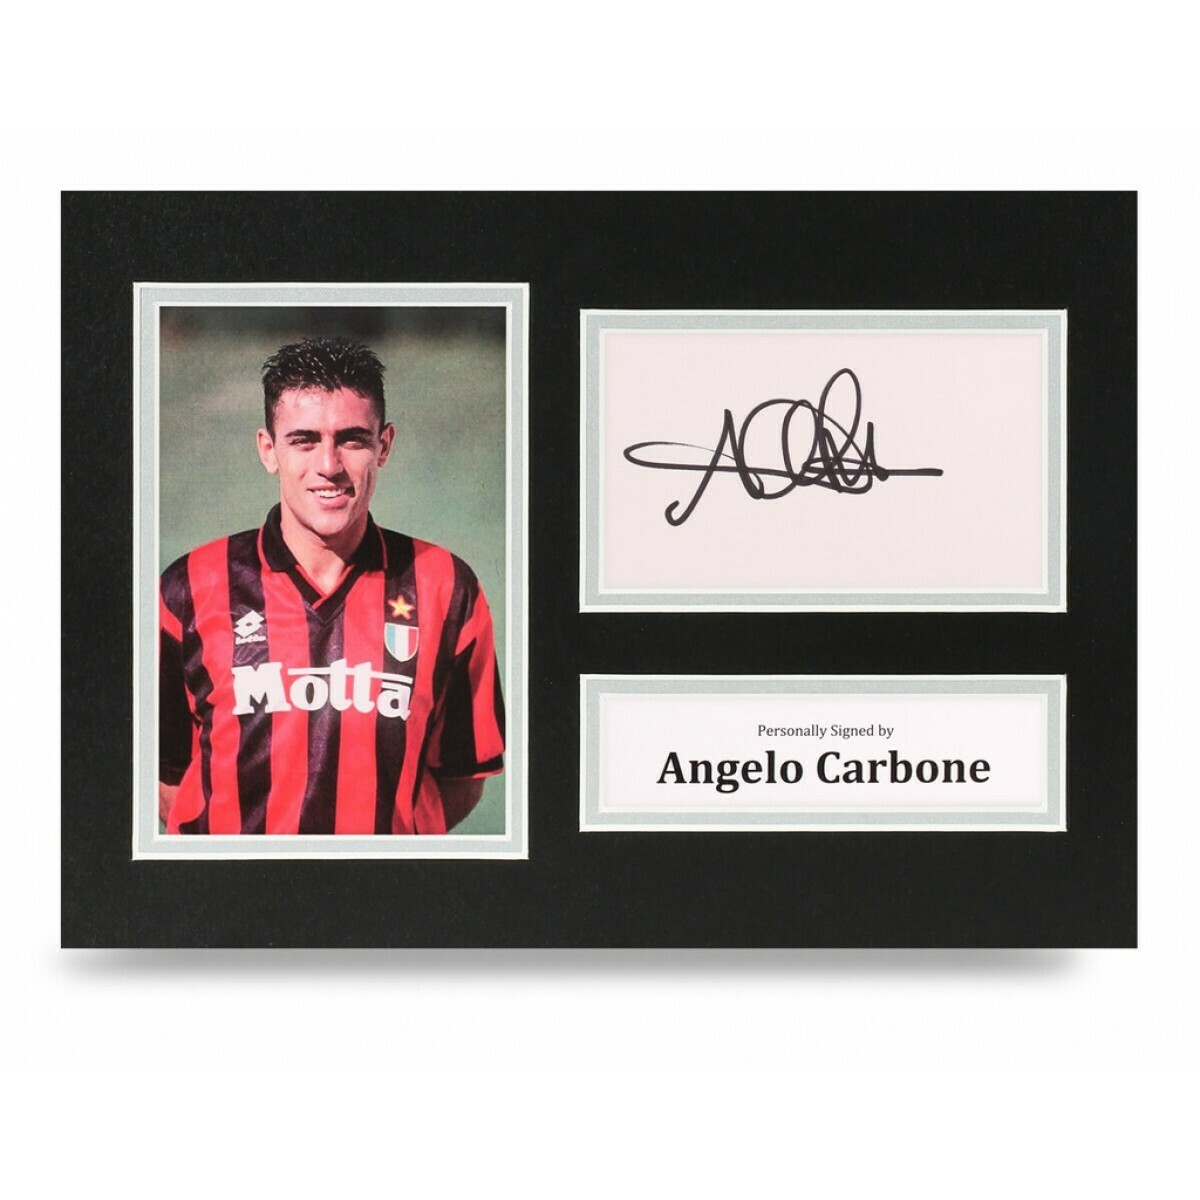 ANGELO CARBONE  DISPLAY  AUTOGRAFATA SIGNED AUTOGRAPH SIGNED CARBONE SIGNED MILAN Formato A4